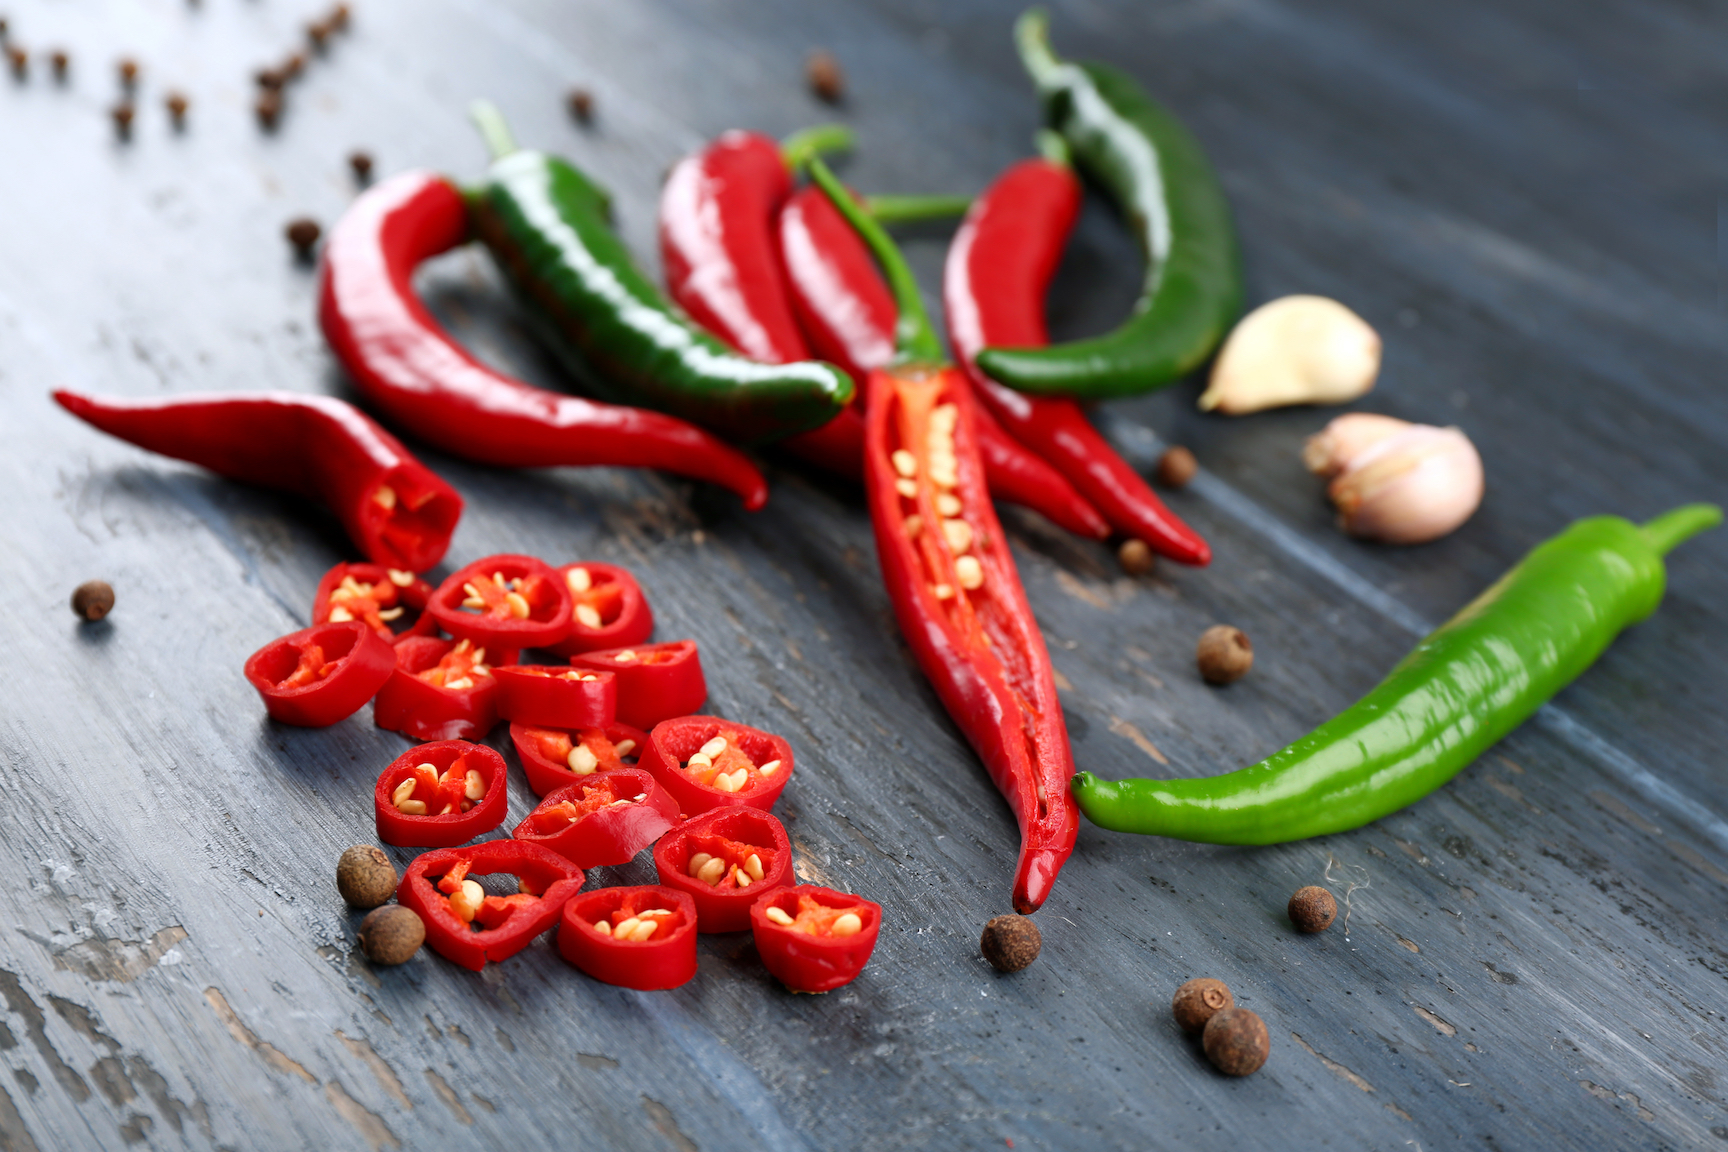 Study participants who ate spicy foods were found to be less likely to eat too much salt and more likely to have lower blood pressure.